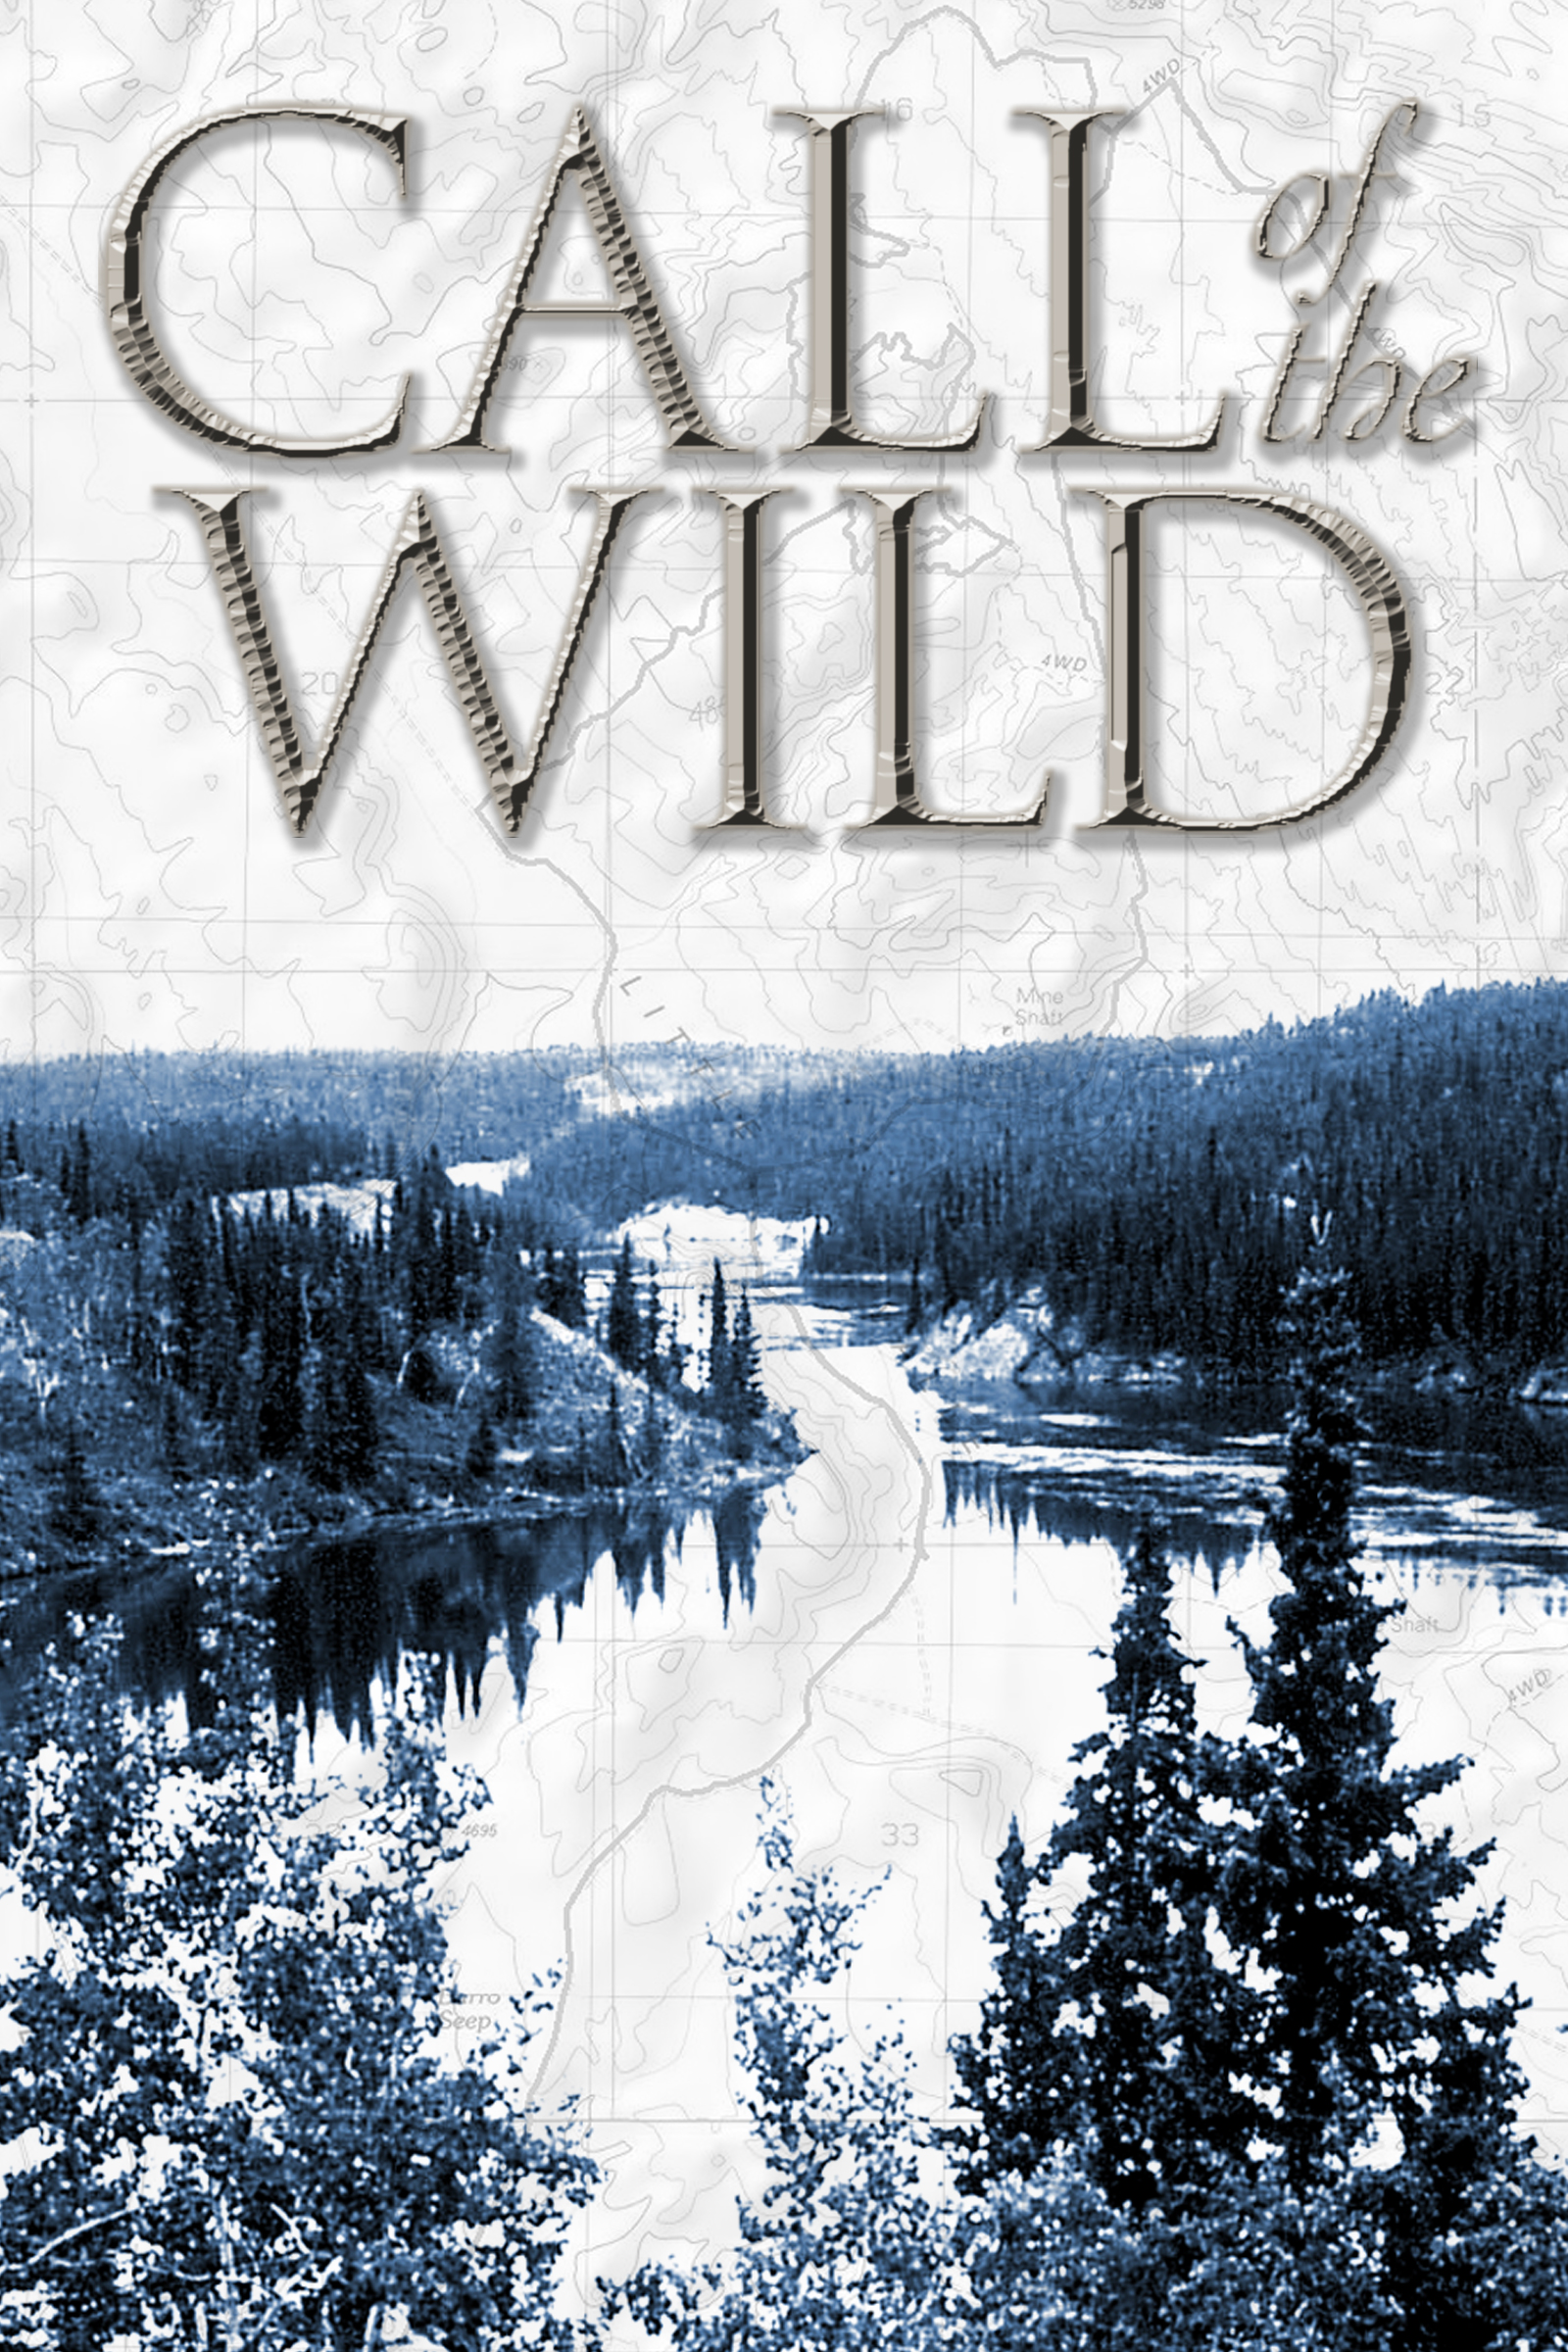 a plot summary of the novel call of the wild by jack london The call of the wild, this is a study guide for the book the call of the wild written by jack london the call of the wild is a novella by american author jack london.